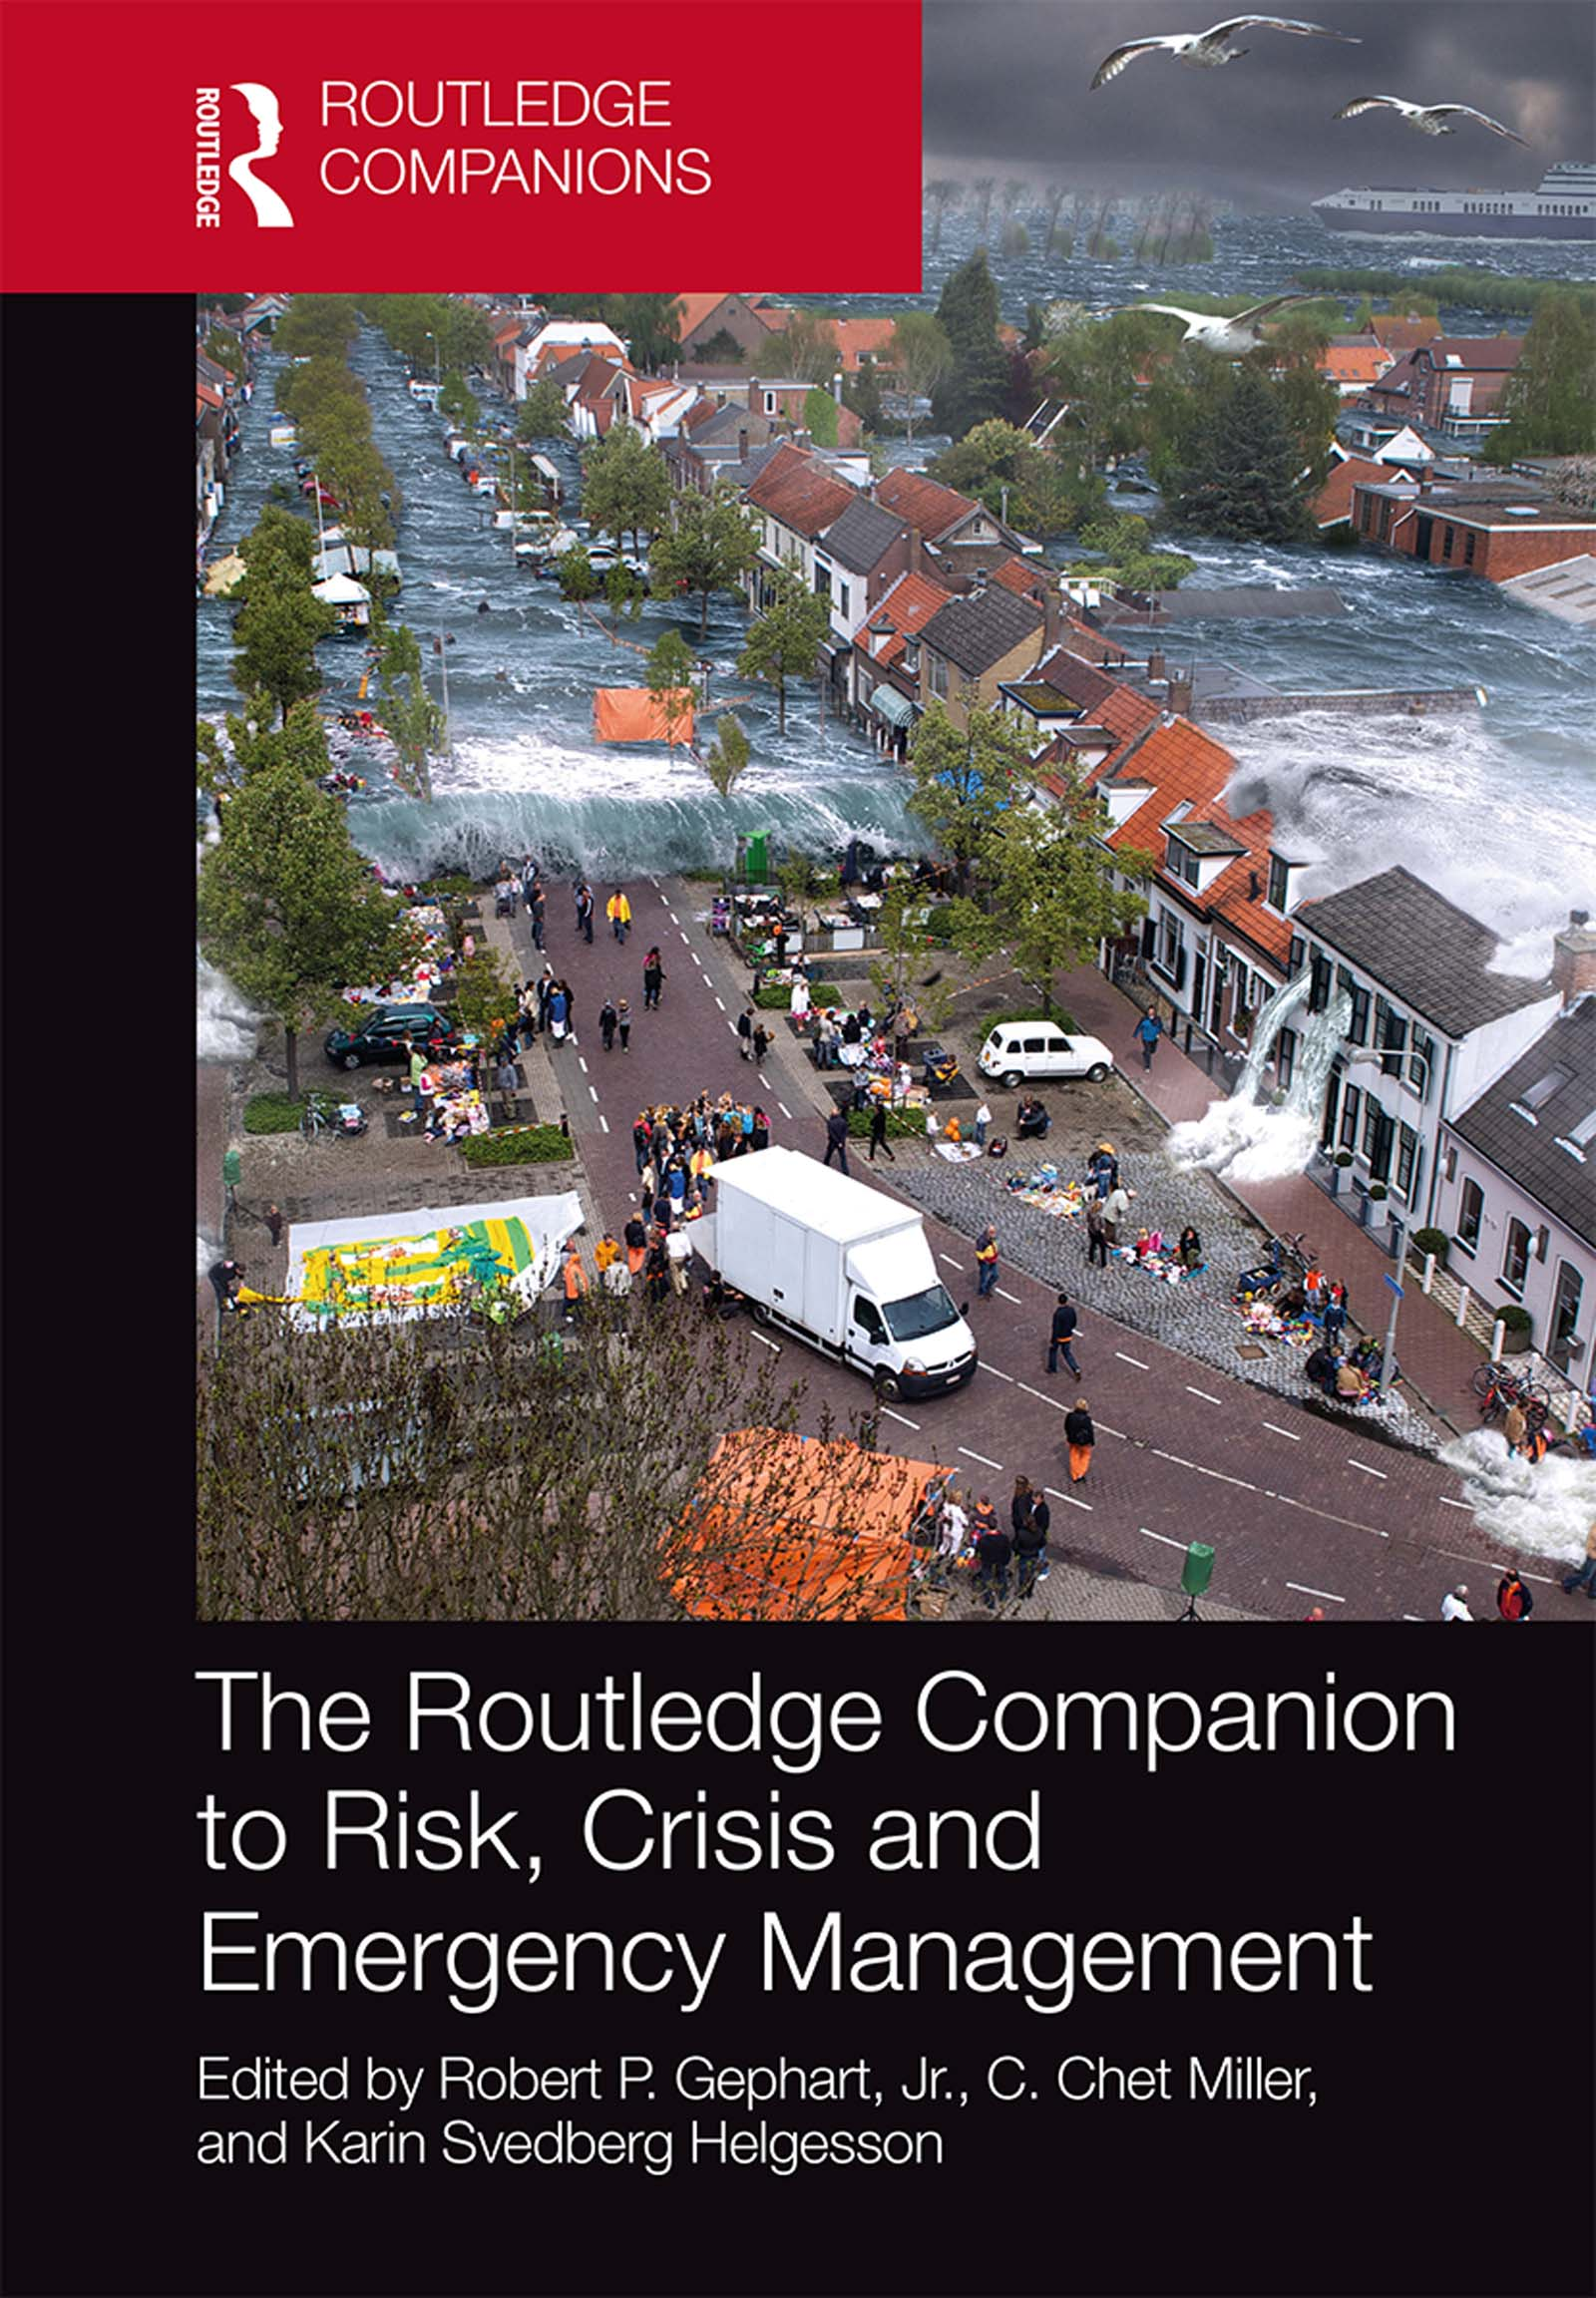 Download Ebook The Routledge Companion to Risk, Crisis and Emergency Management by Gephart, Jr., Robert P. Pdf